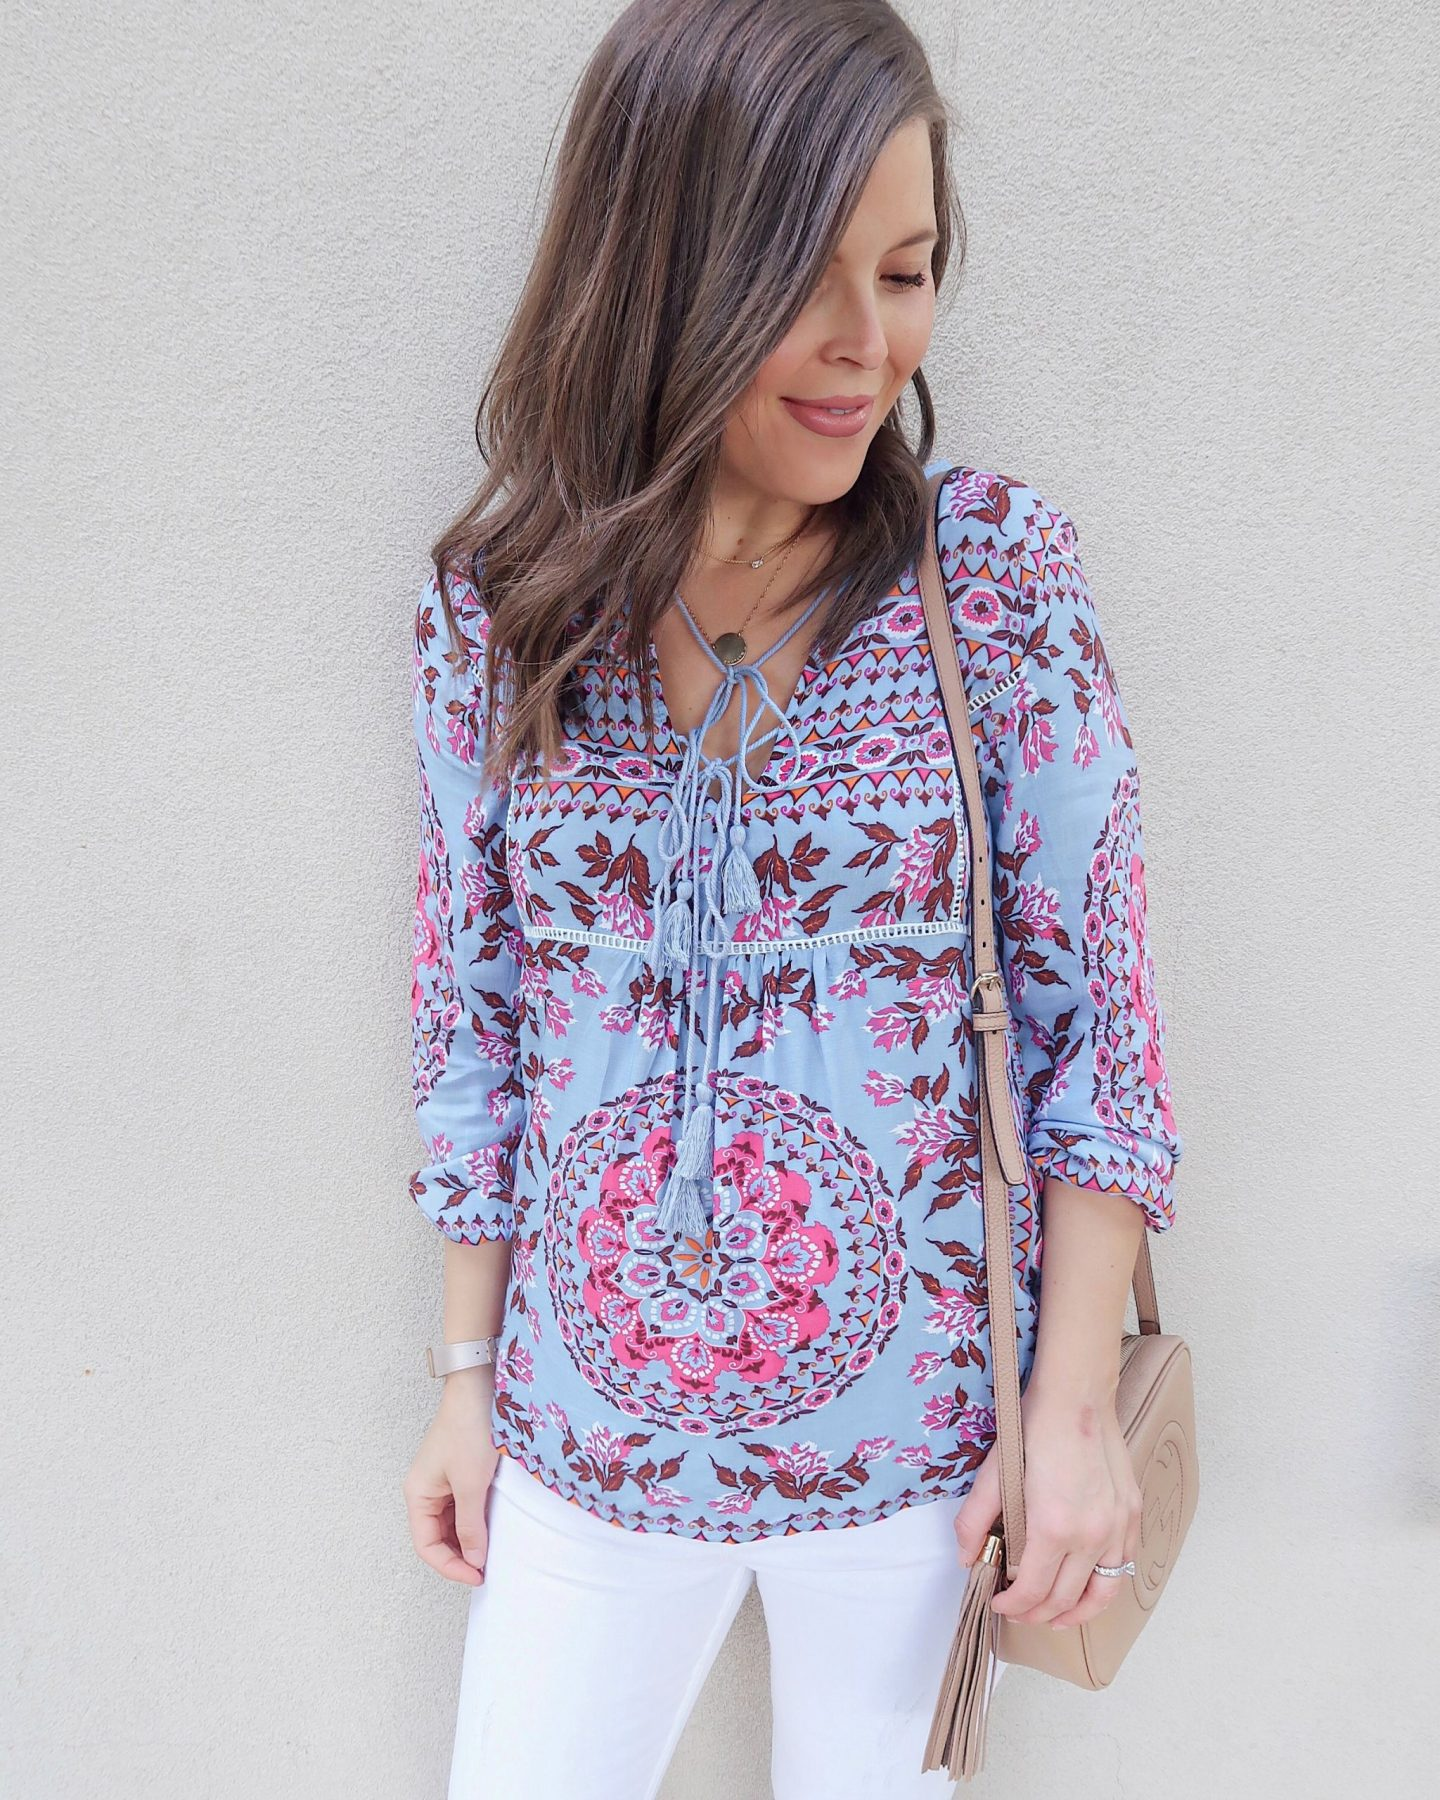 amazon try-on brie_bemis_rearick_amazon_r.vivimons_floral_print_ruffle_boho_blouse_2